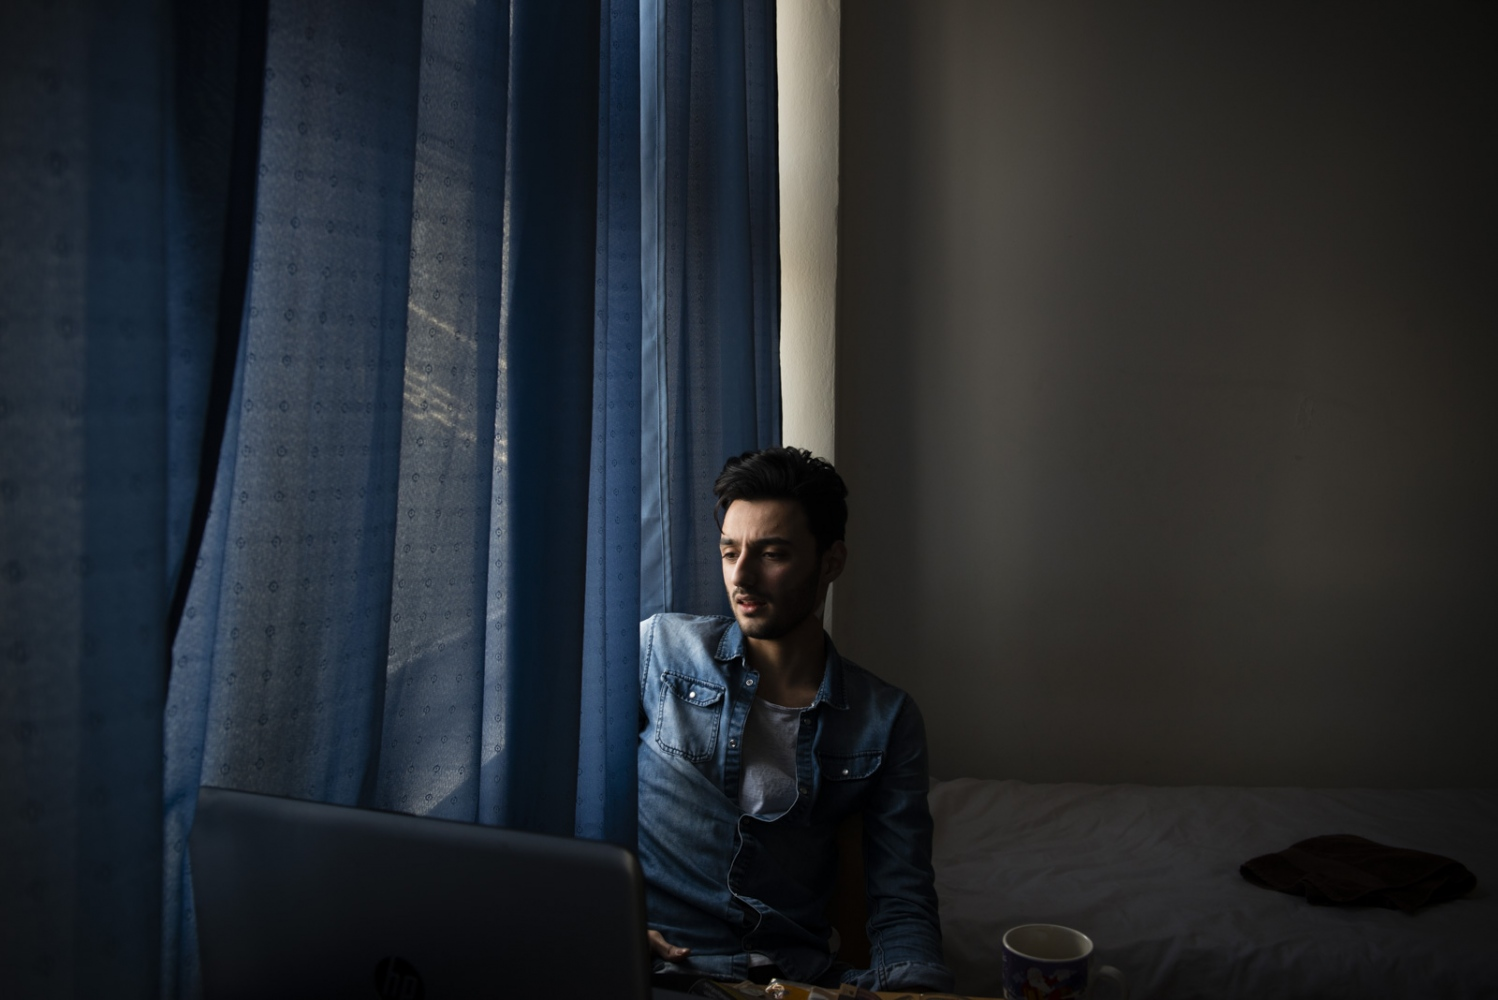 BERLIN | GERMANY | 2017-03-04 | Ramez (24), on his moving day, checks his Facebook in his old room. With the housing crisis that is going on in Berlin and across Germany, finding an apartment or a room to rent has become a nearly impossible task, for locals as well as refugees.